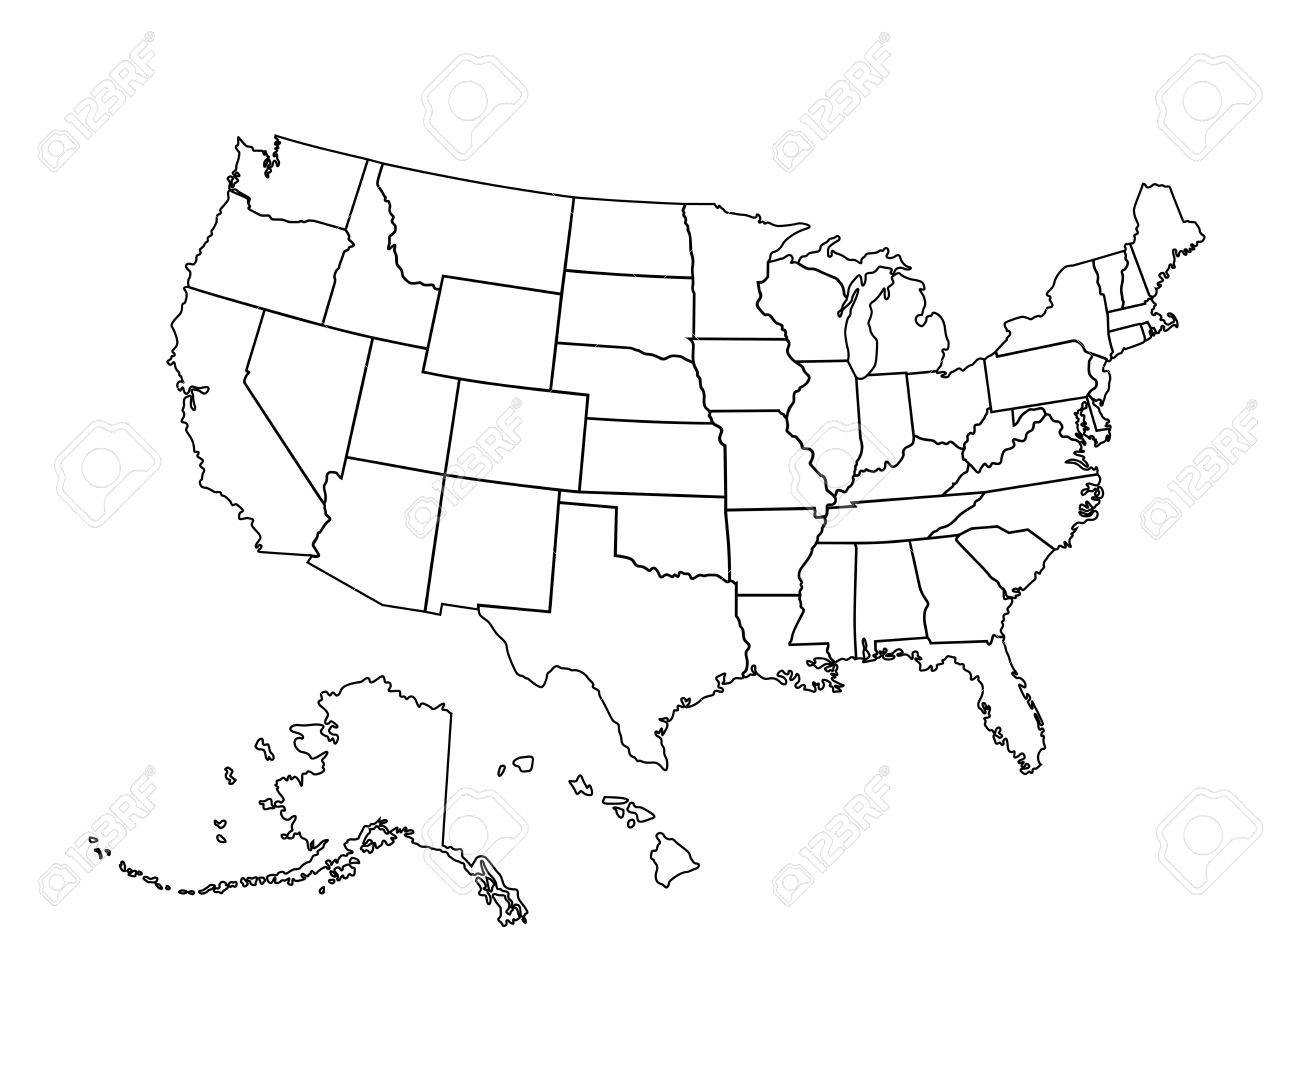 US Maps USA State Maps Simlified Vector Map Of USA Stock Vector - Us map vector black and white